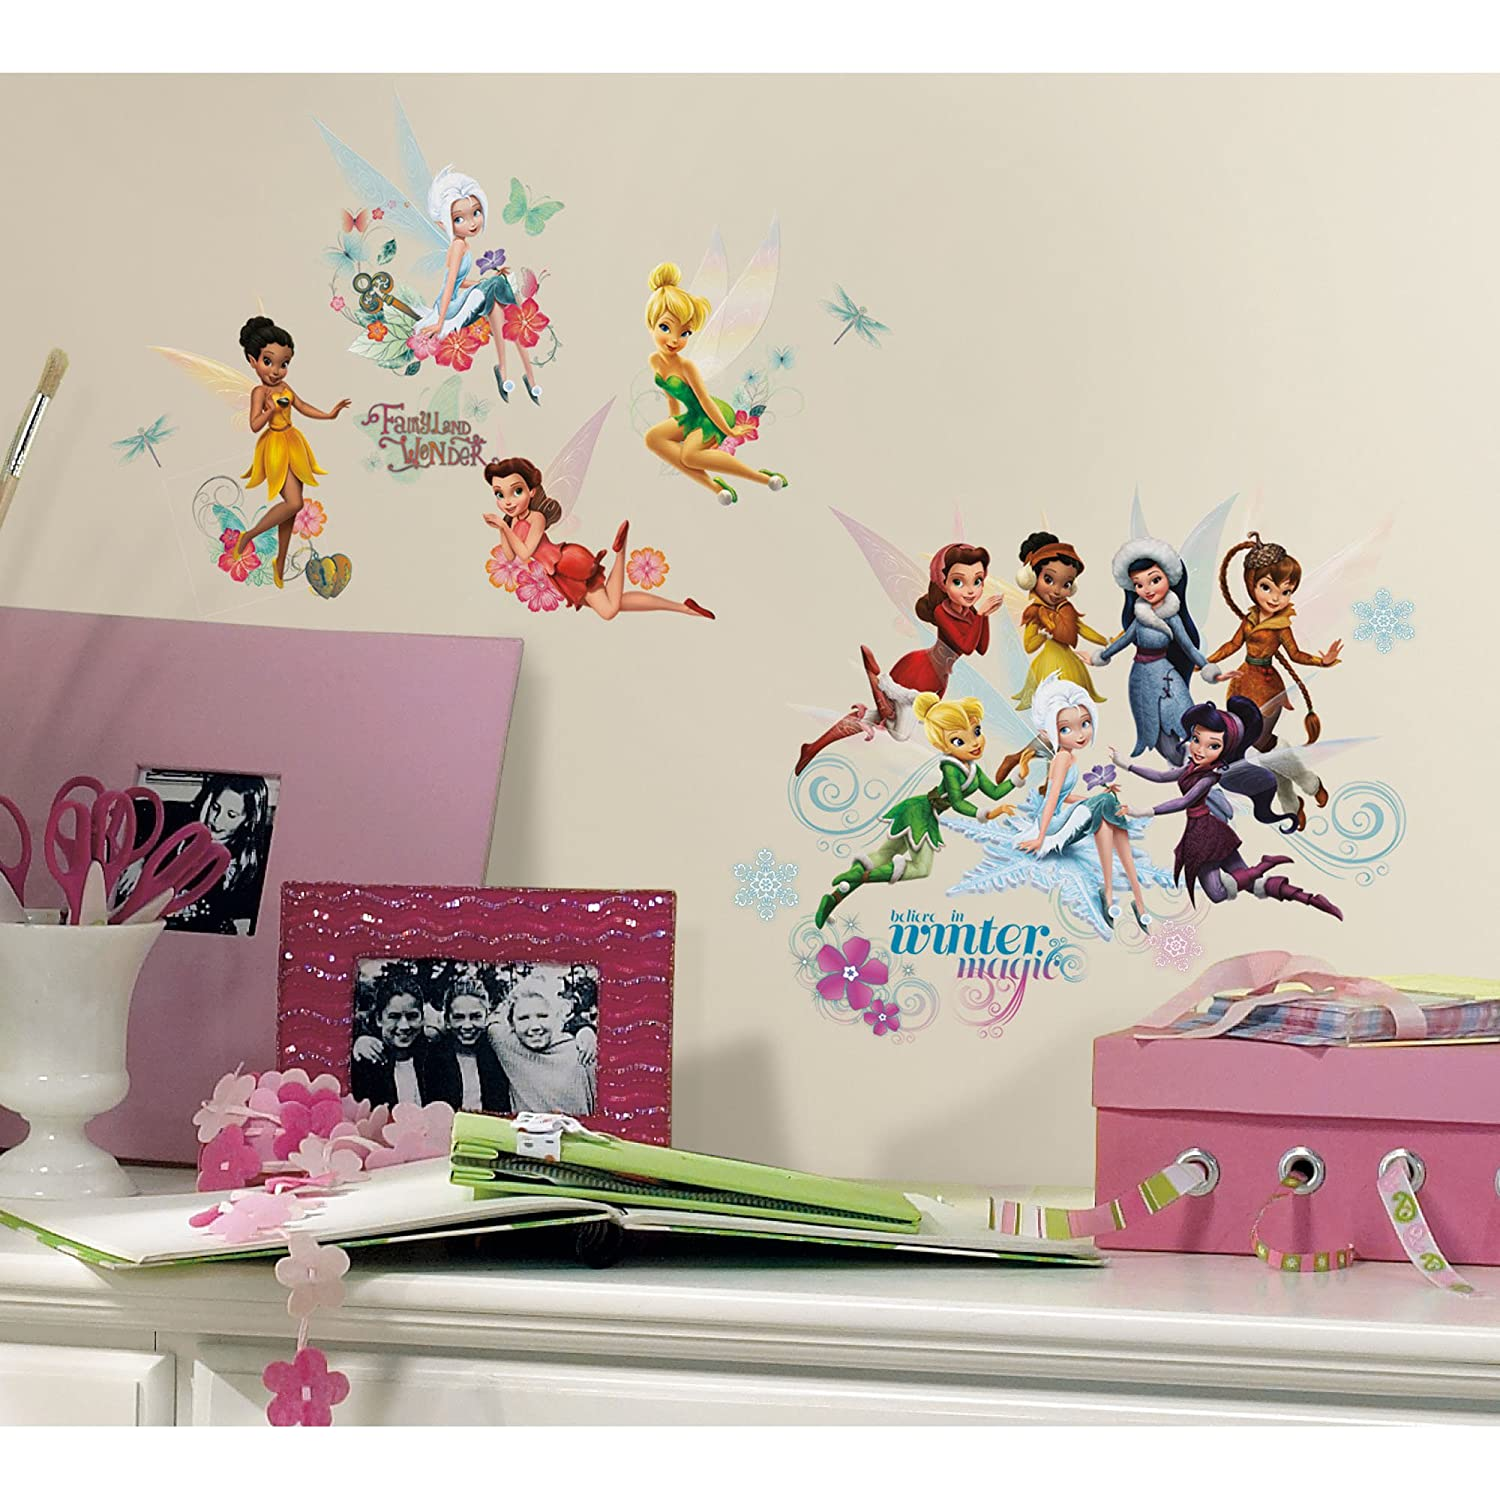 Beau Roommates Rmk2058Scs Disney Fairies Secret Of The Wings Peel And Stick Wall  Decals   Wall Decor Stickers   Amazon.com